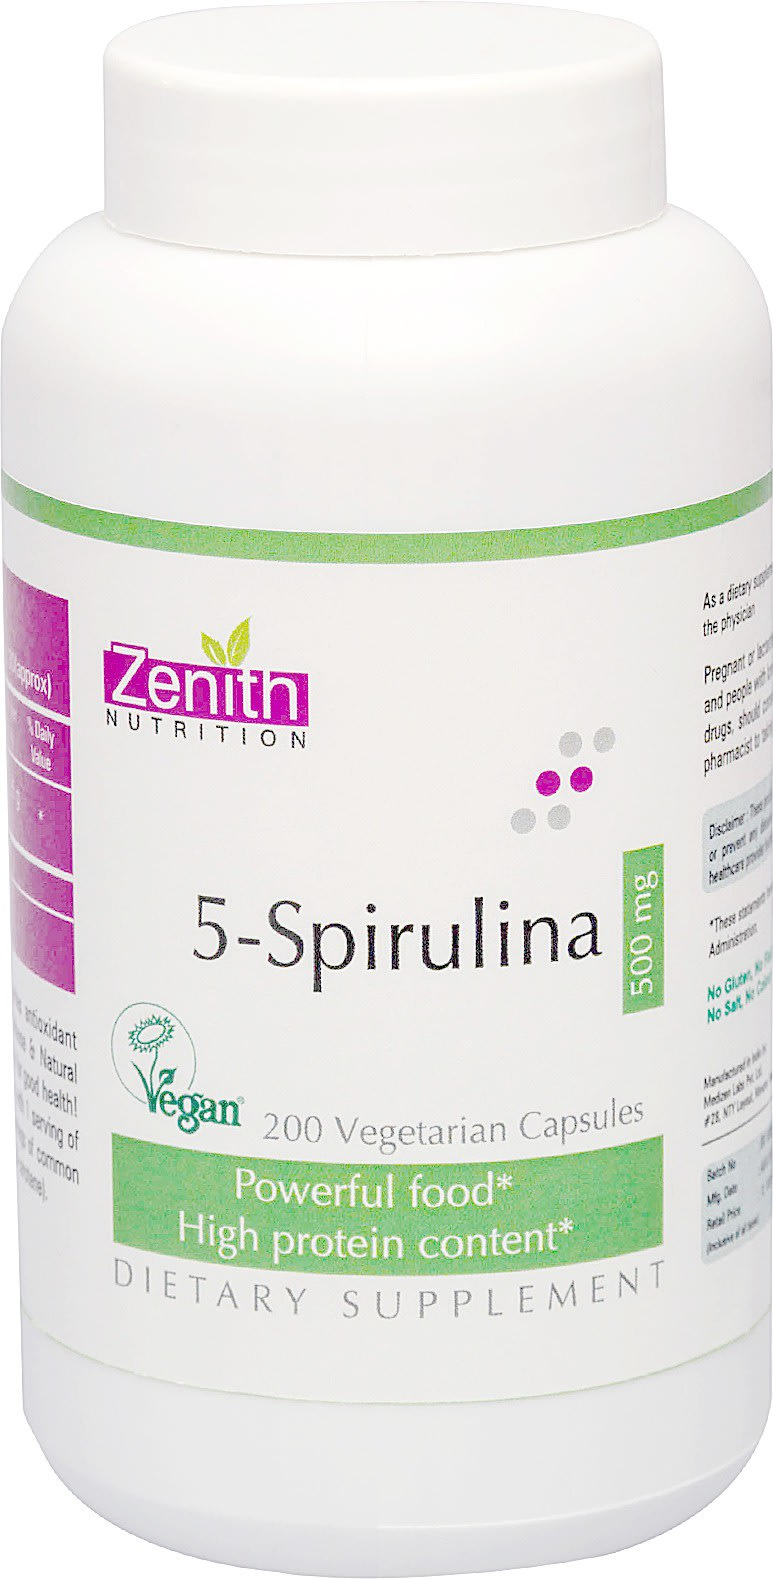 Zenith Nutrition  5-Spirulina 500mg Capsule